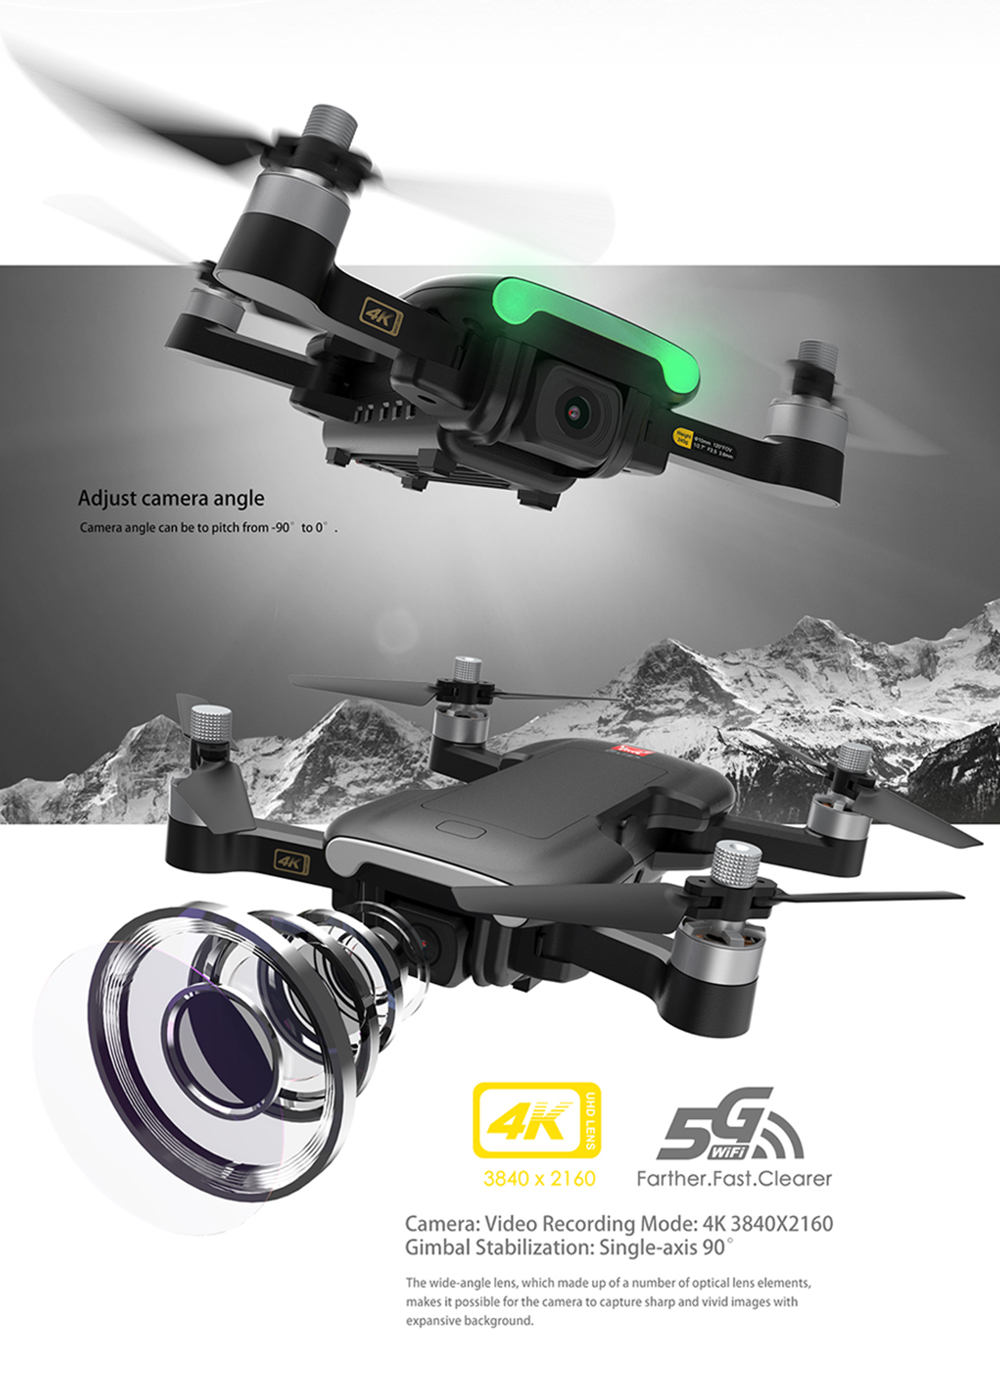 MJX Bugs 7 B7 GPS Drone With 4K 5G WIFI HD Camera Brushless Motor RC Quadcopter Professional Foldable Helicopter VS X12 K20 Dron (1B BX)